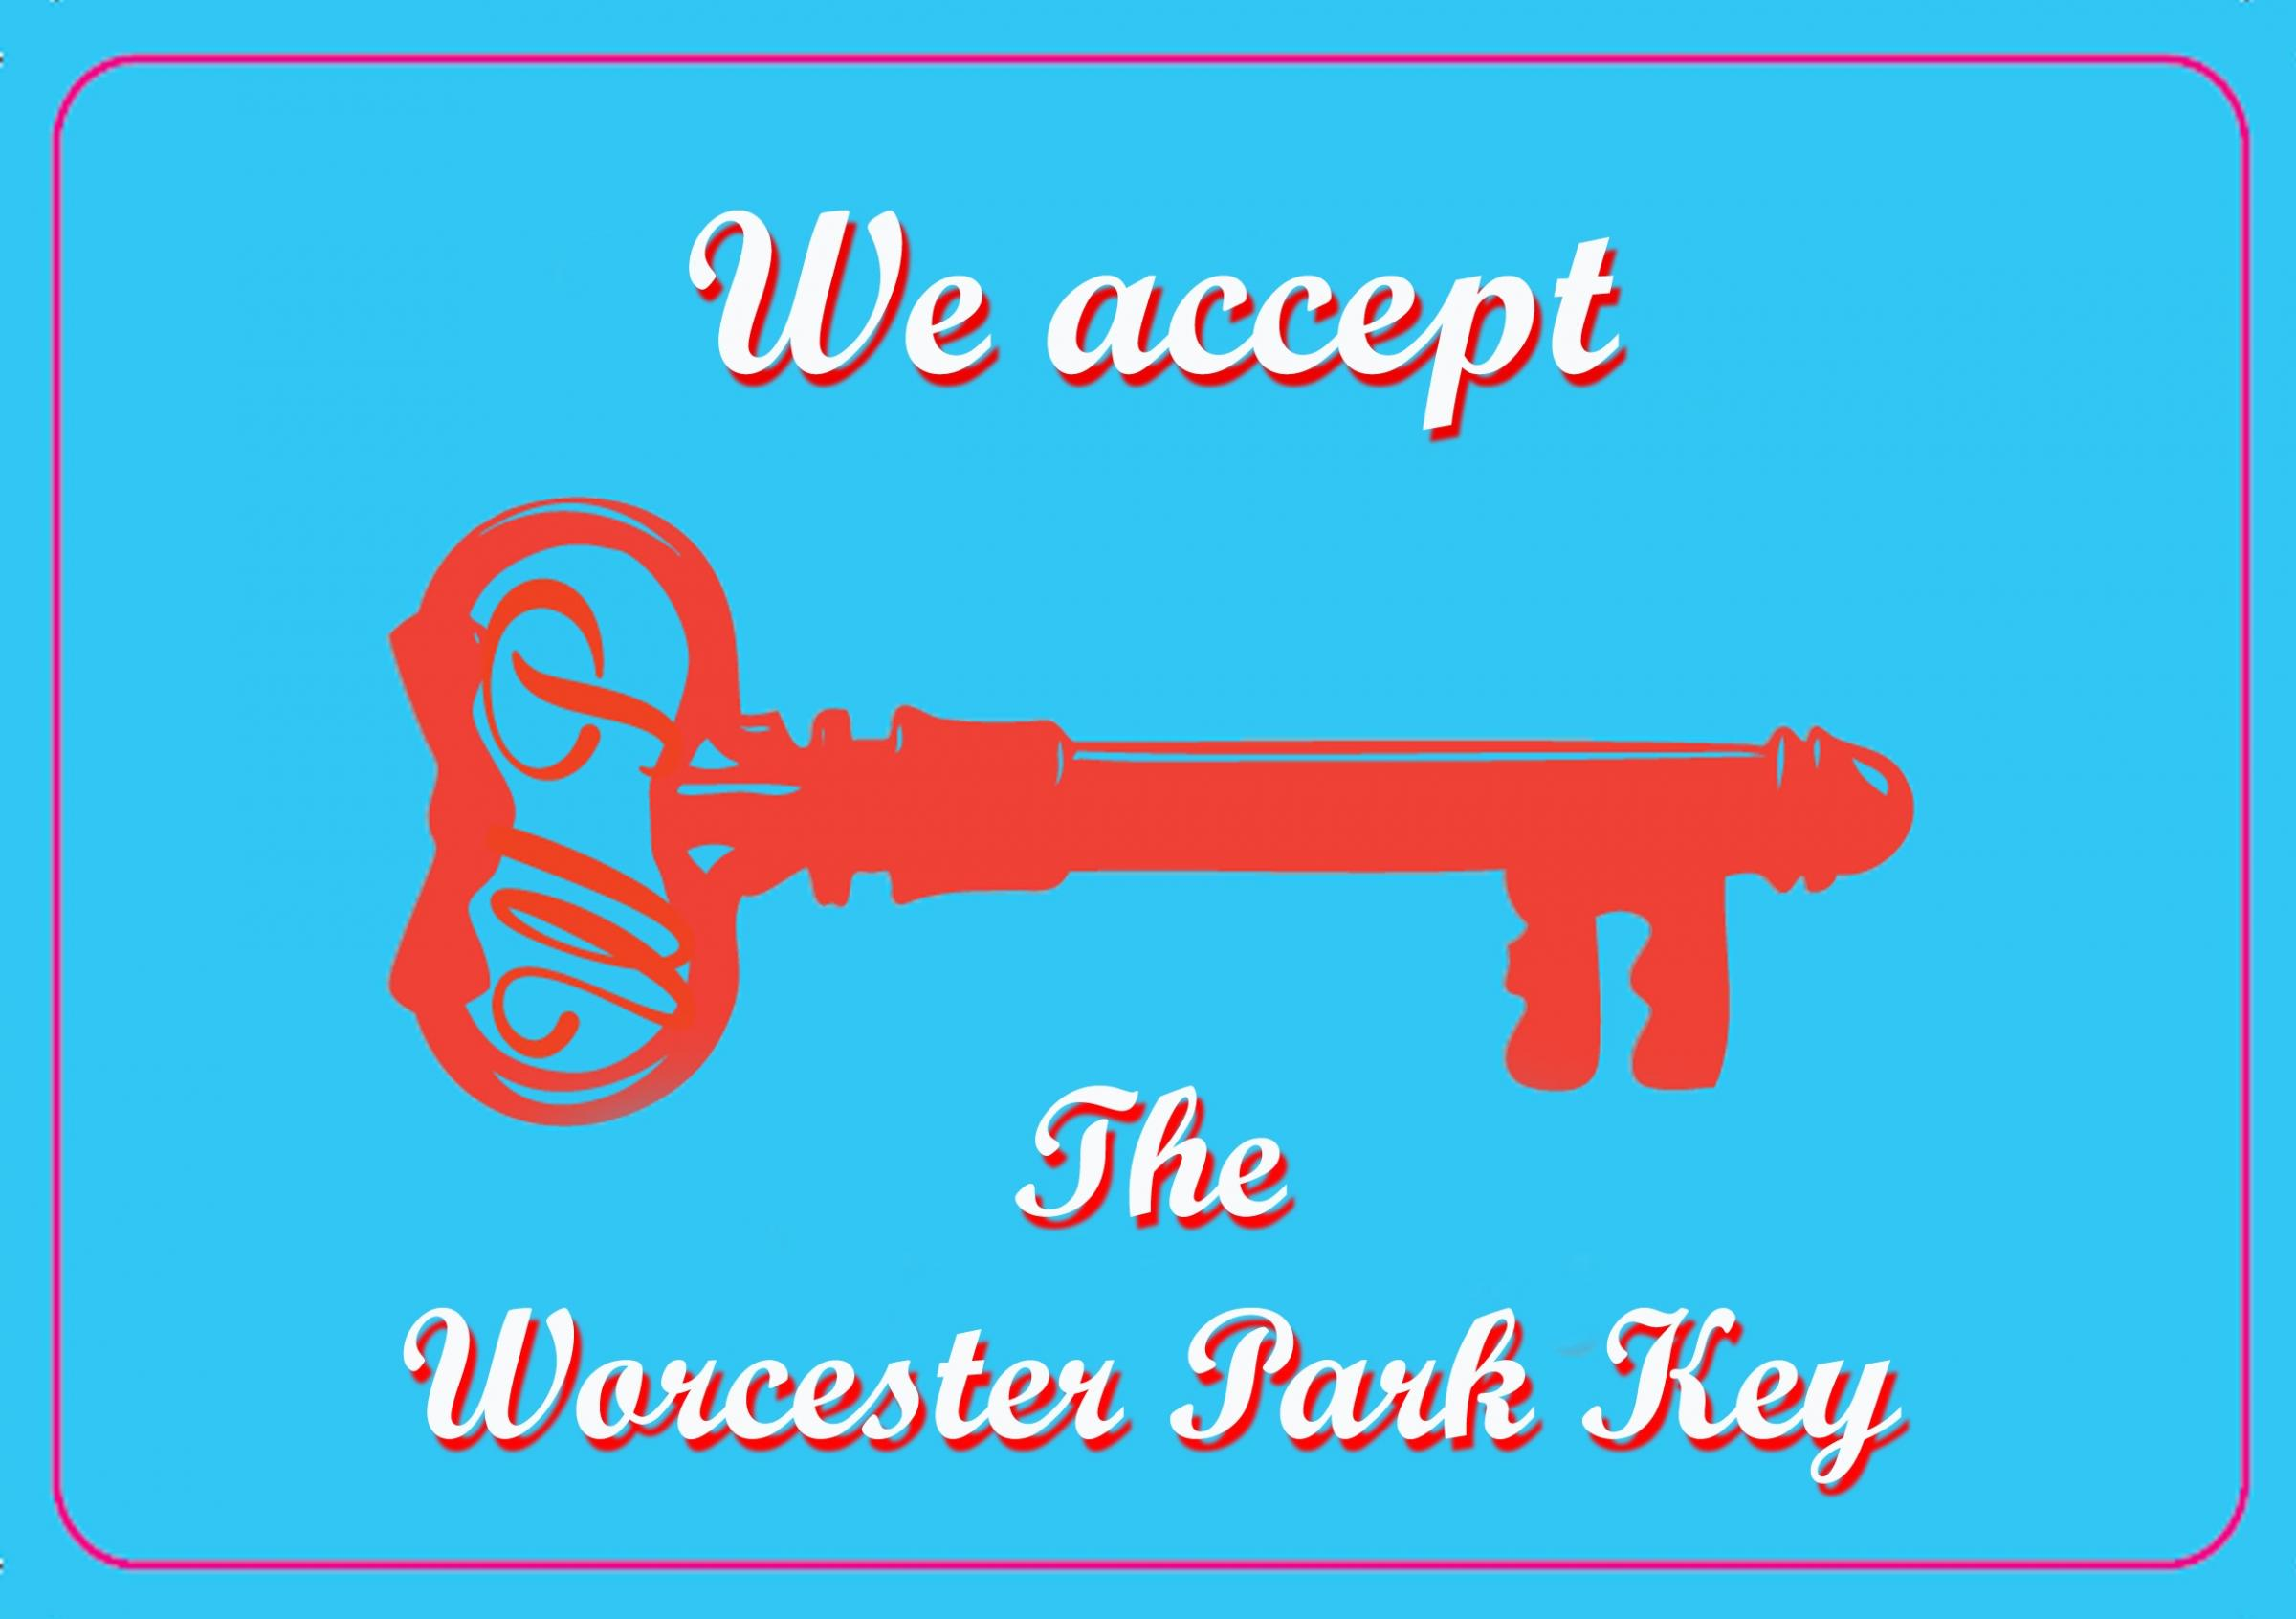 Loyalty card: The Worcester Park Key will save customers money if they shop local